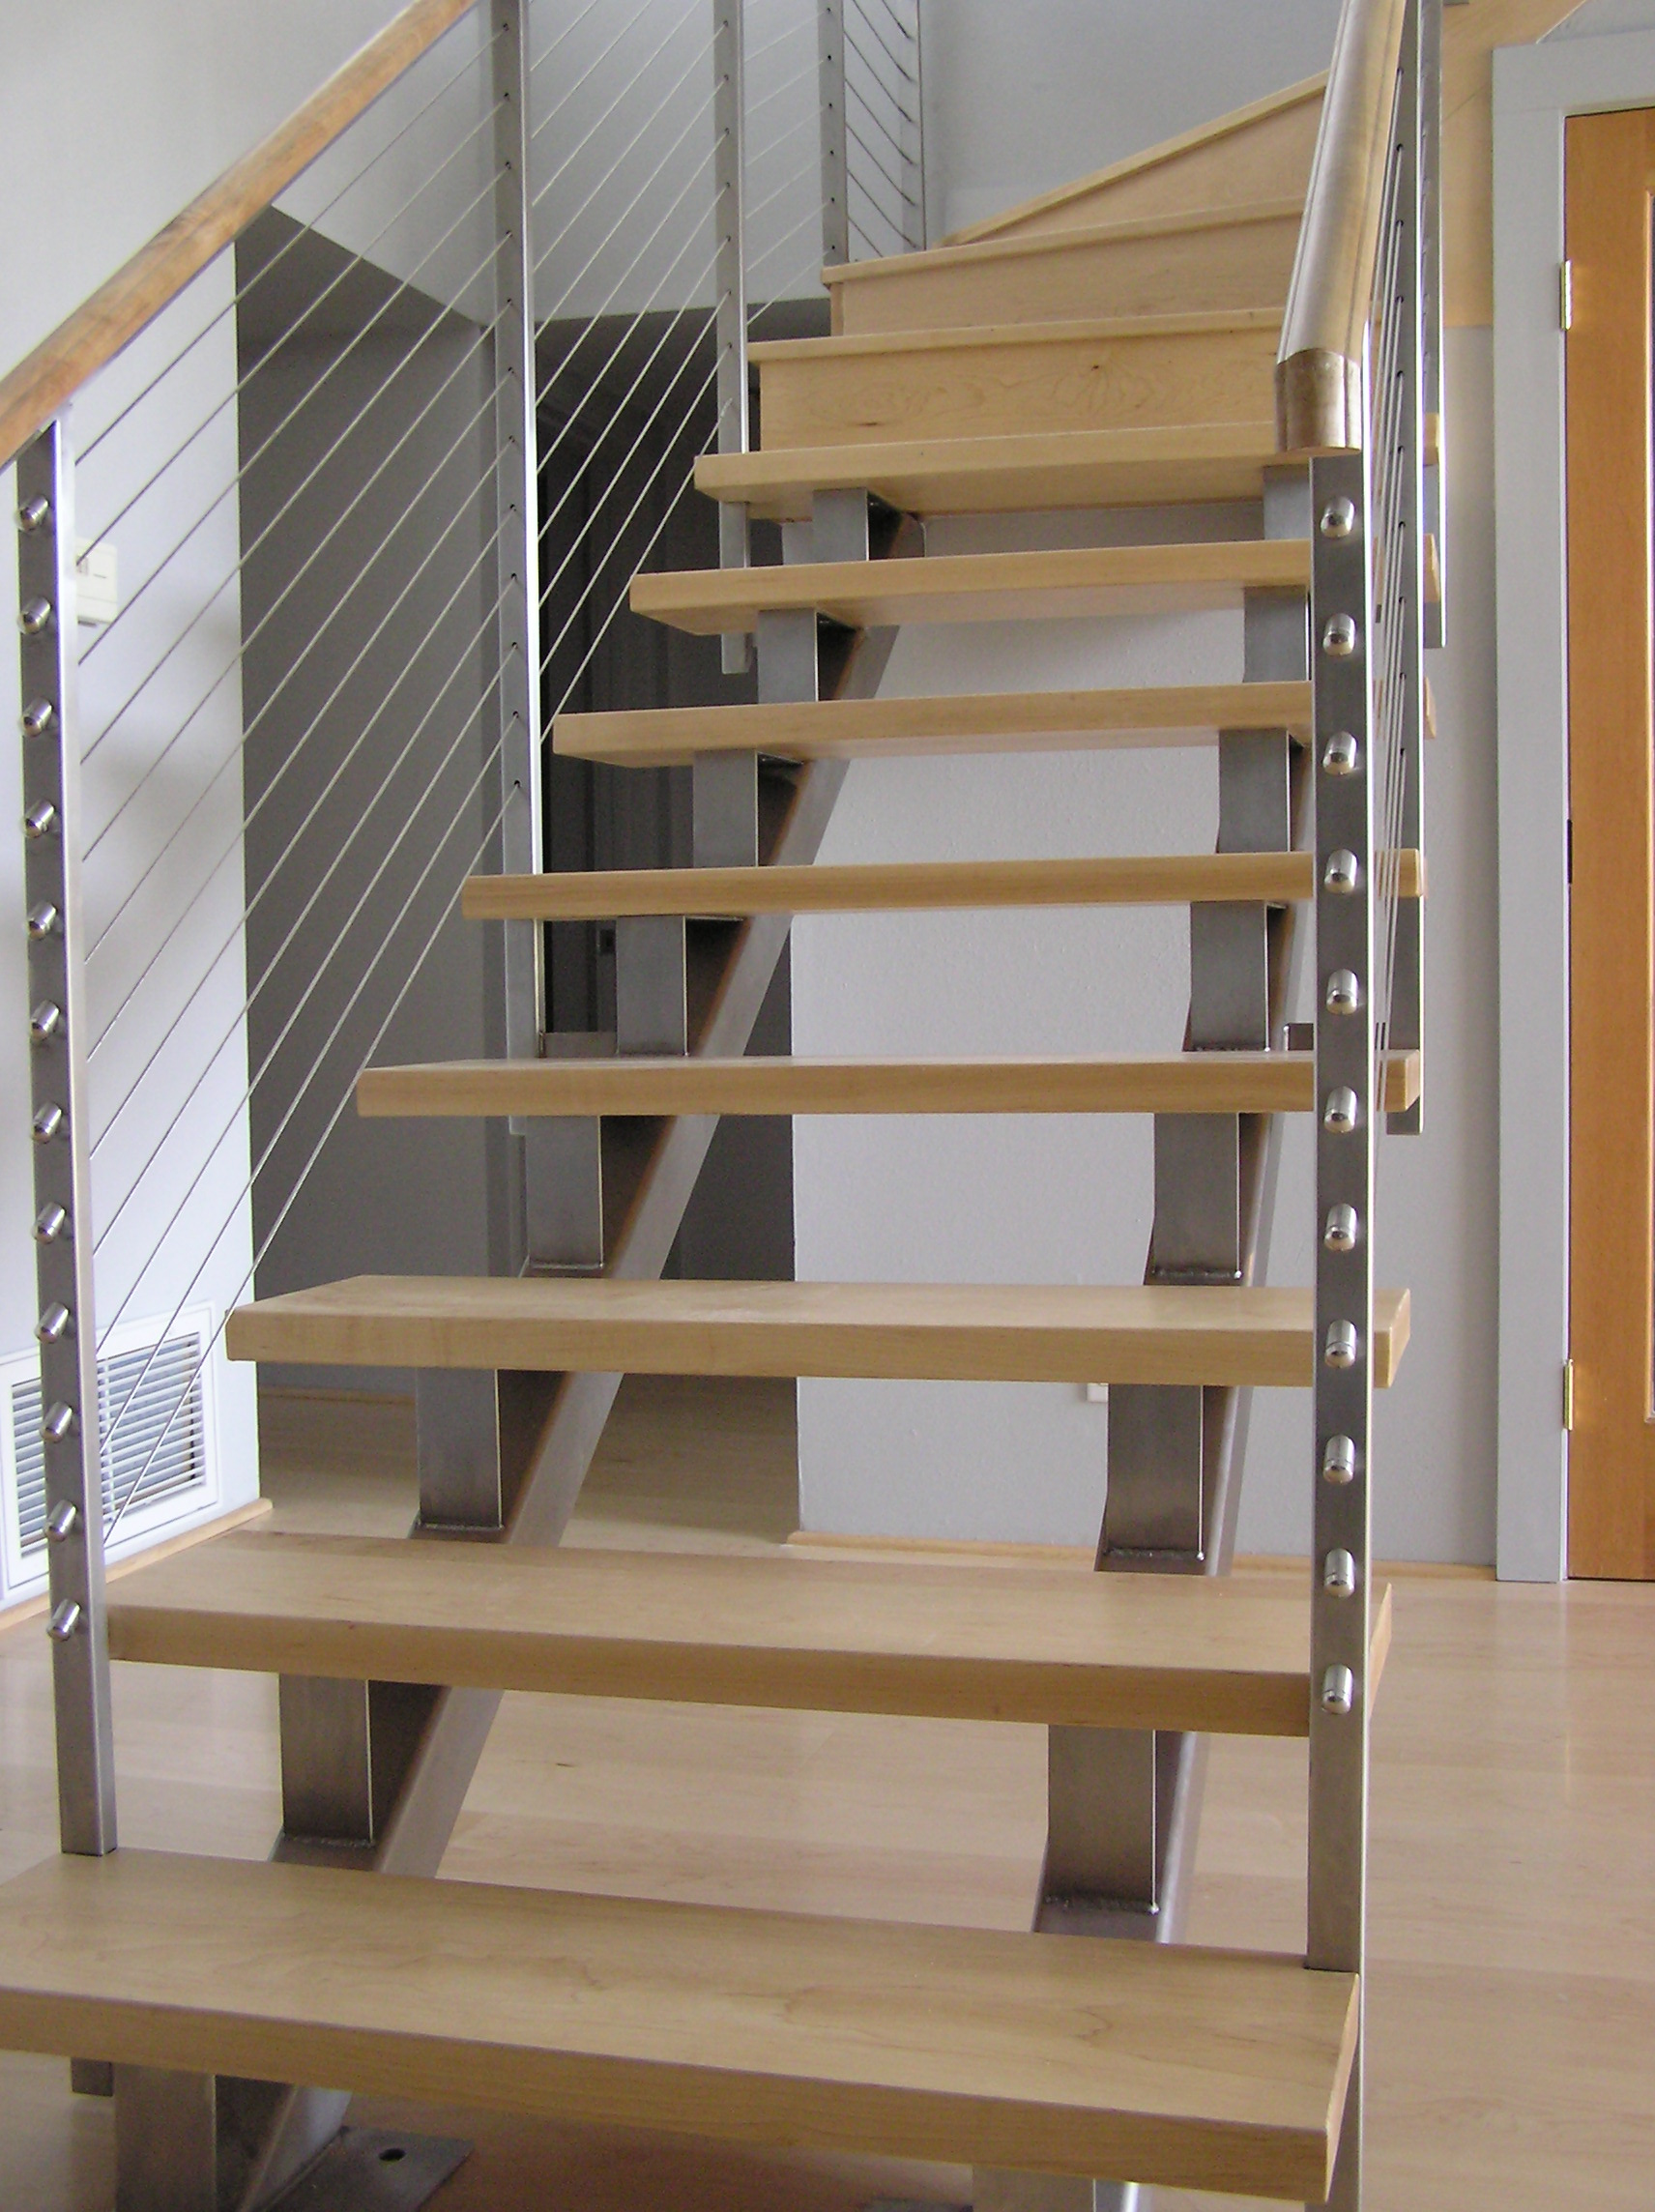 How To Build A Floating Staircase Joy Studio Design